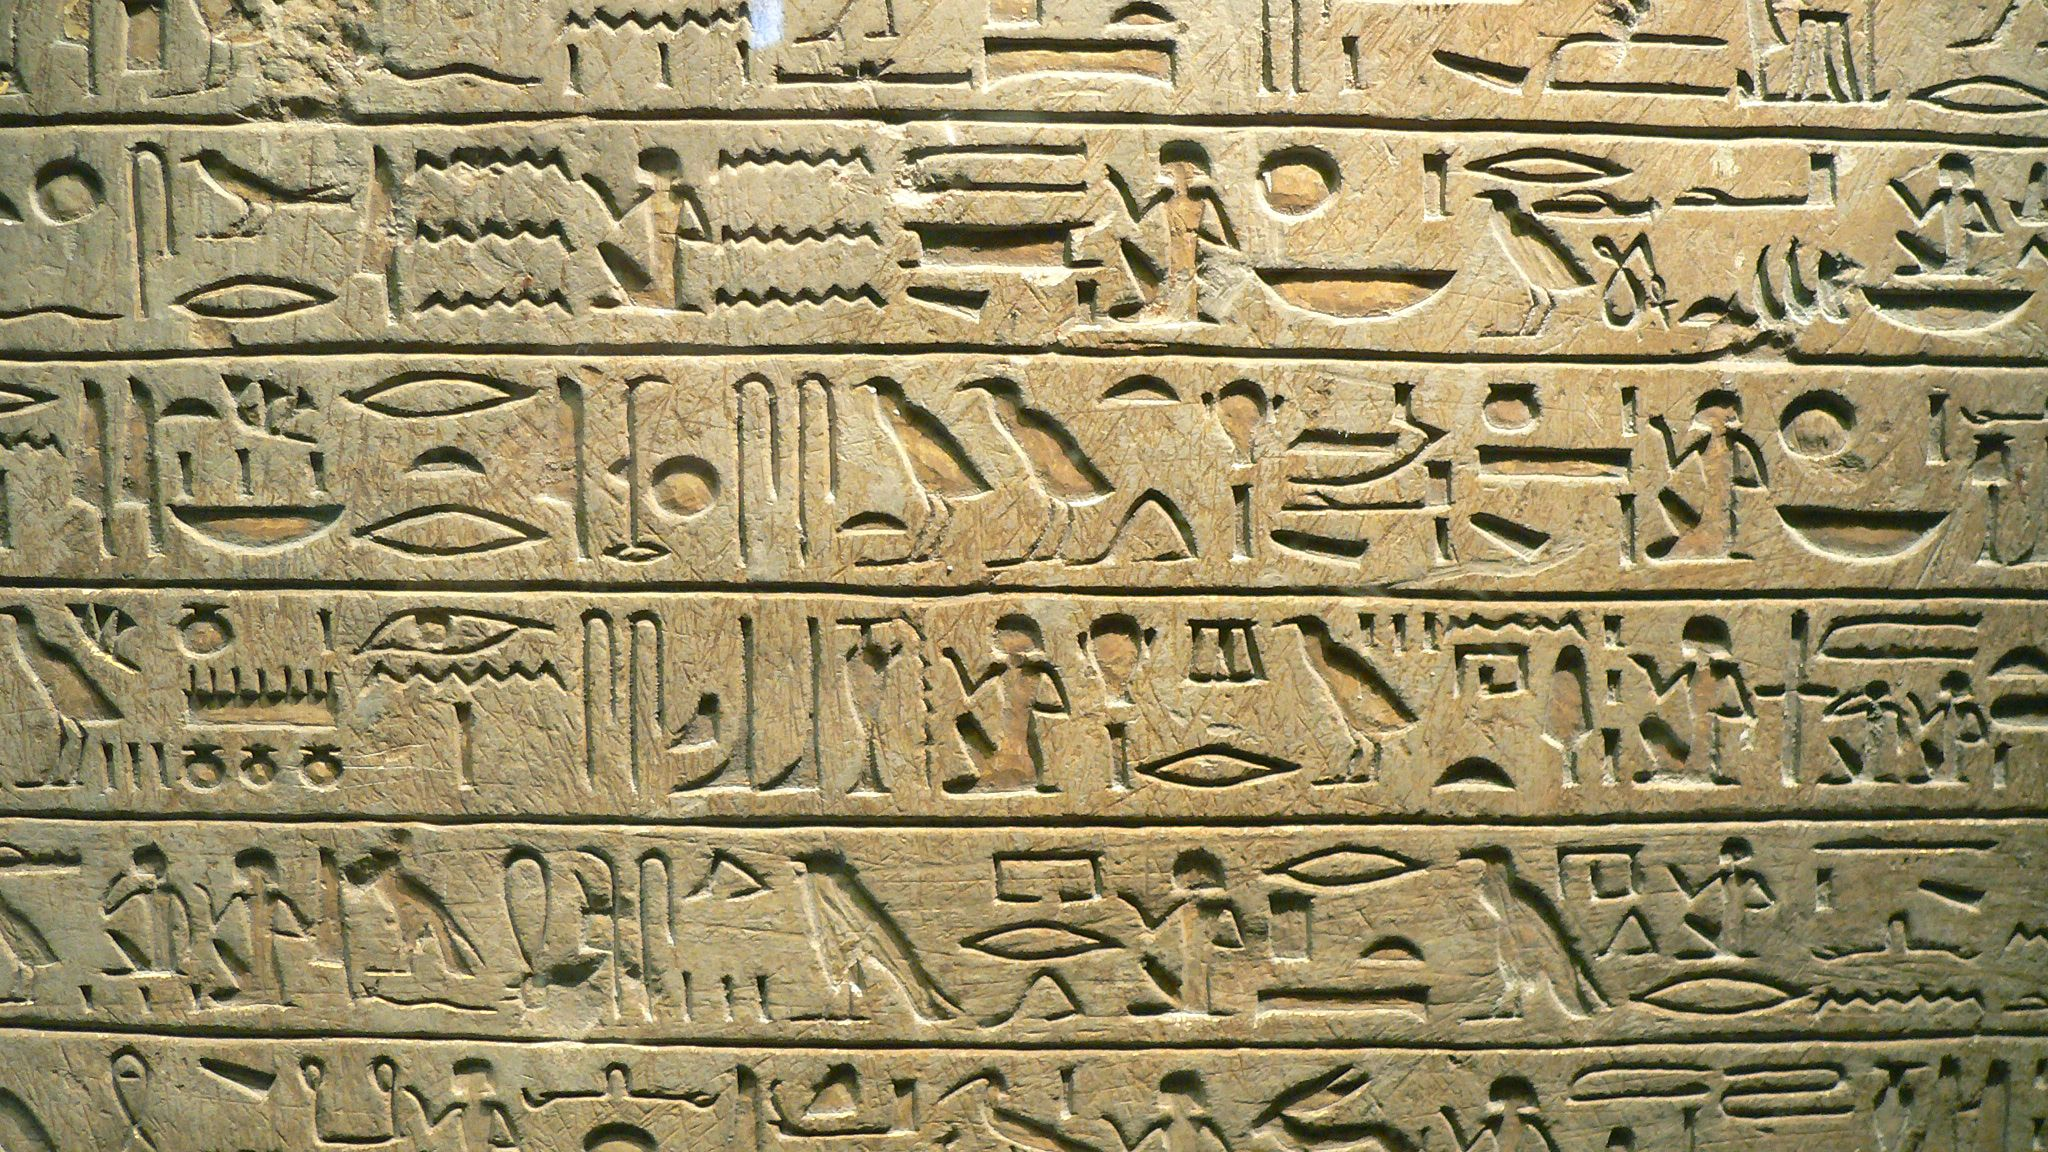 2048x1152 For the First Time, You'll Be Able to Read Ancient Egyptian ...